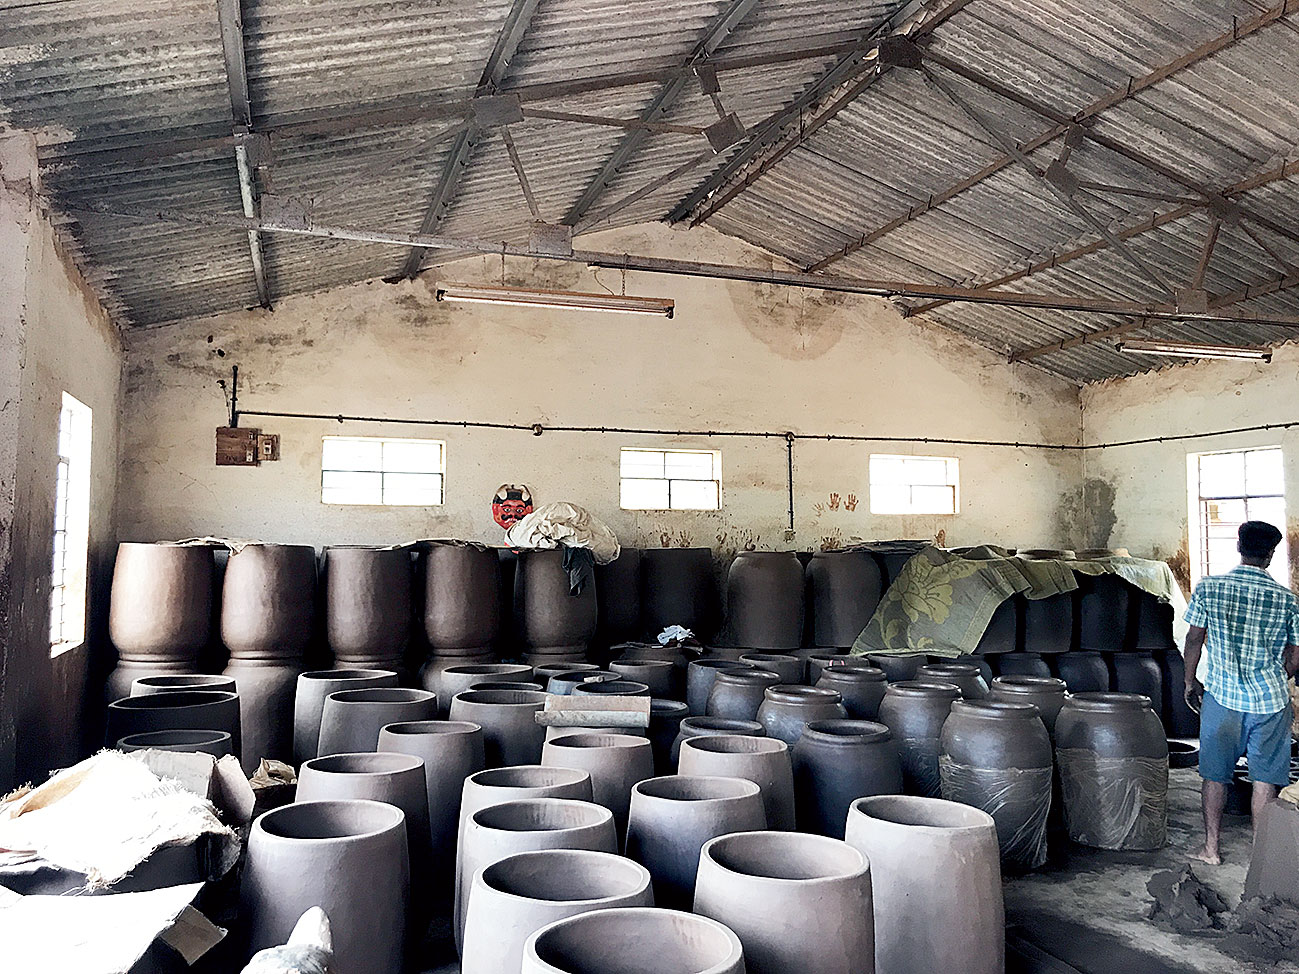 The family-owned pottery